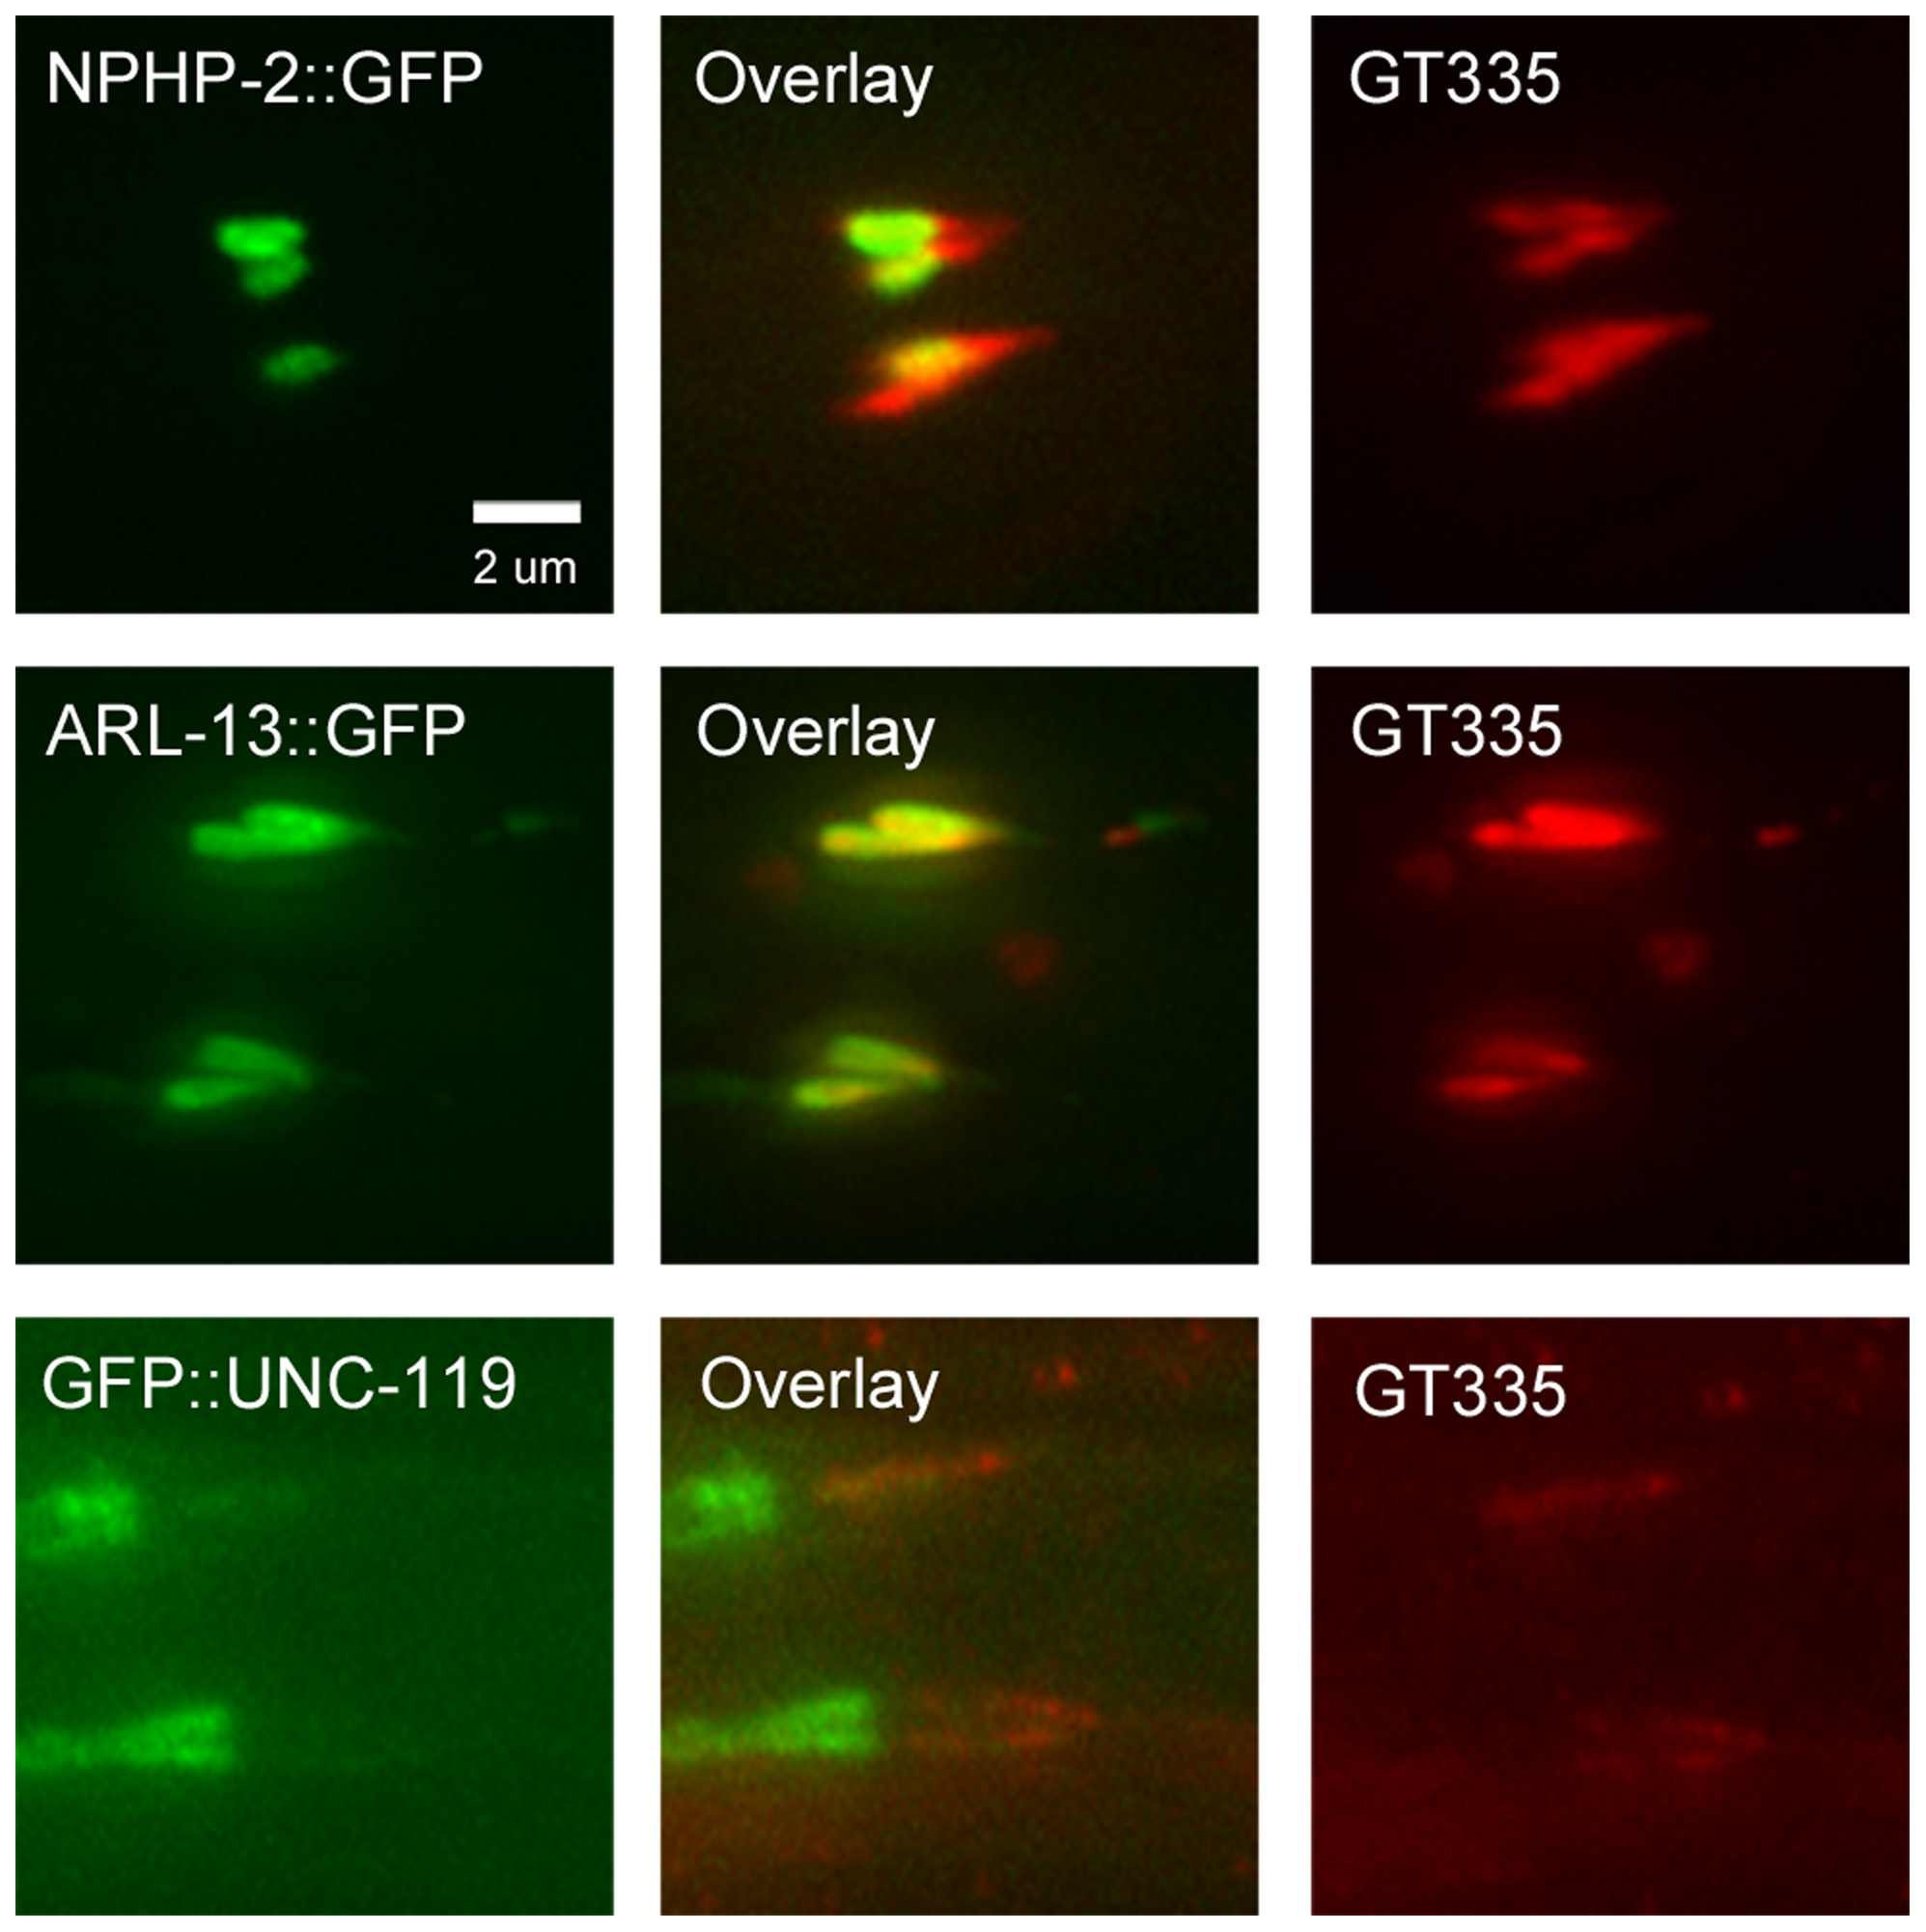 NPHP-2::GFP, ARL-13::GFP, and GFP::UNC-119 colabel with GT335 staining.